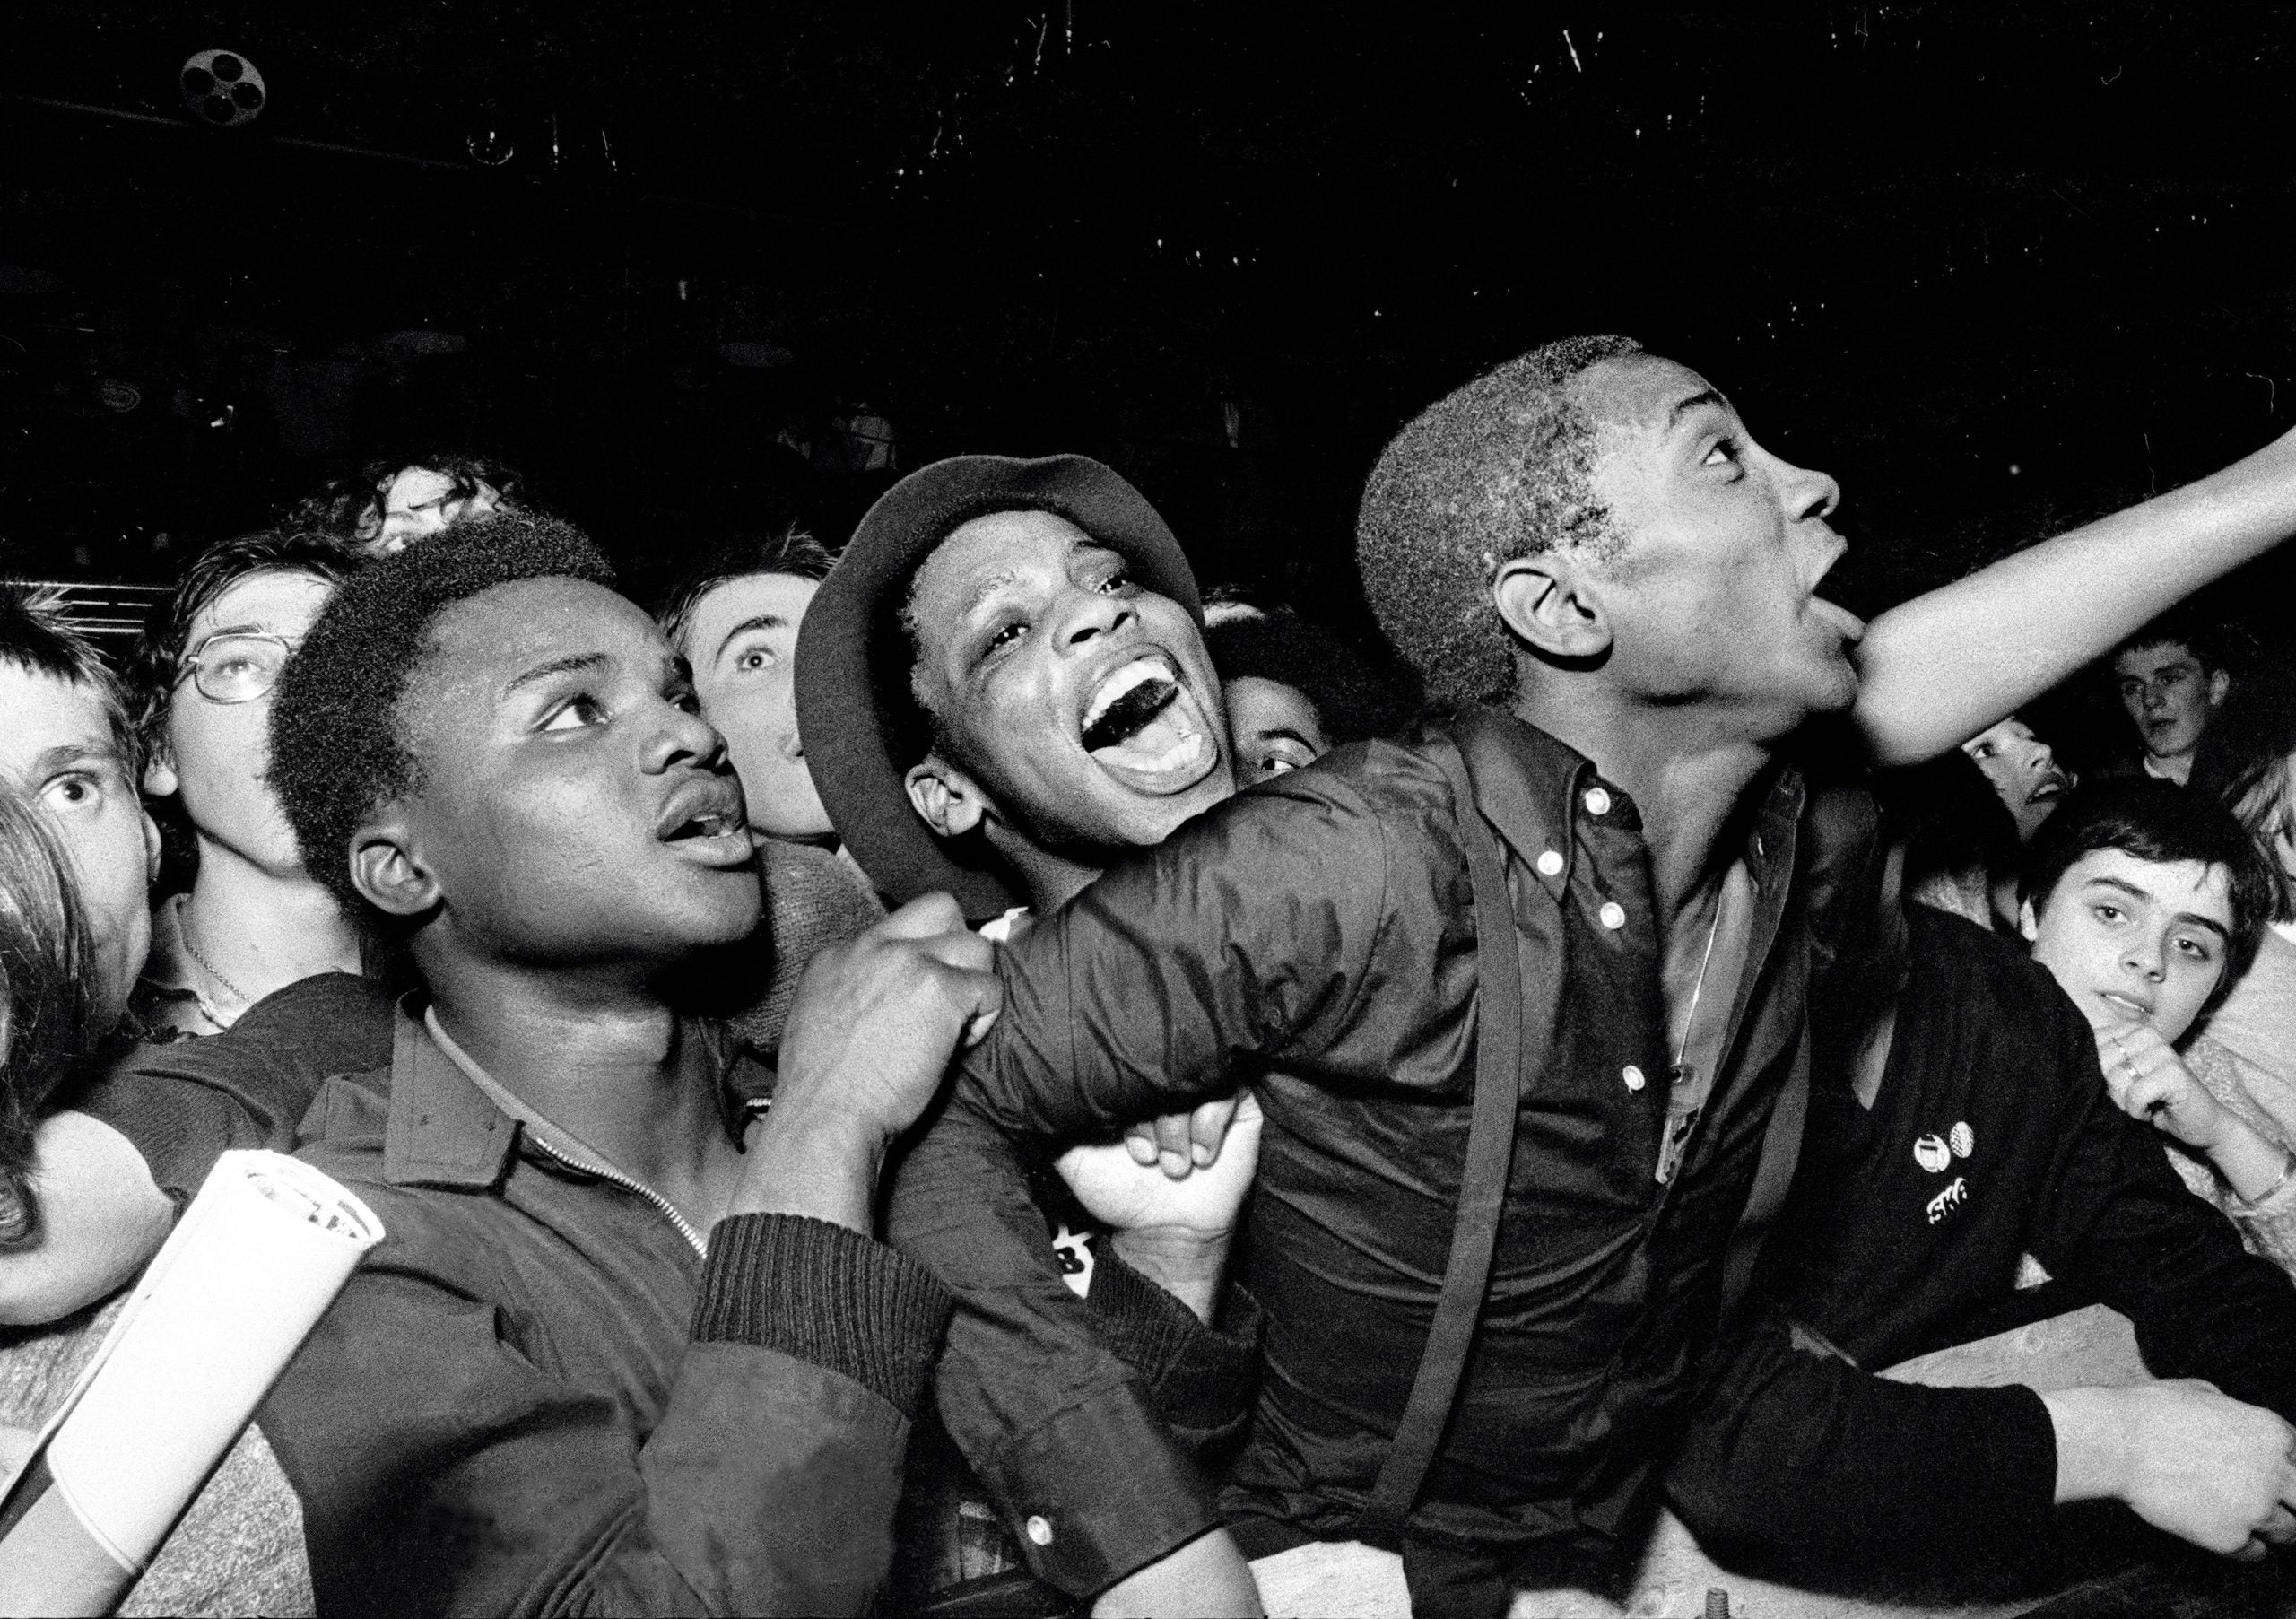 Noisy, messy, unconventional and progressive: remembering Rock Against Racism